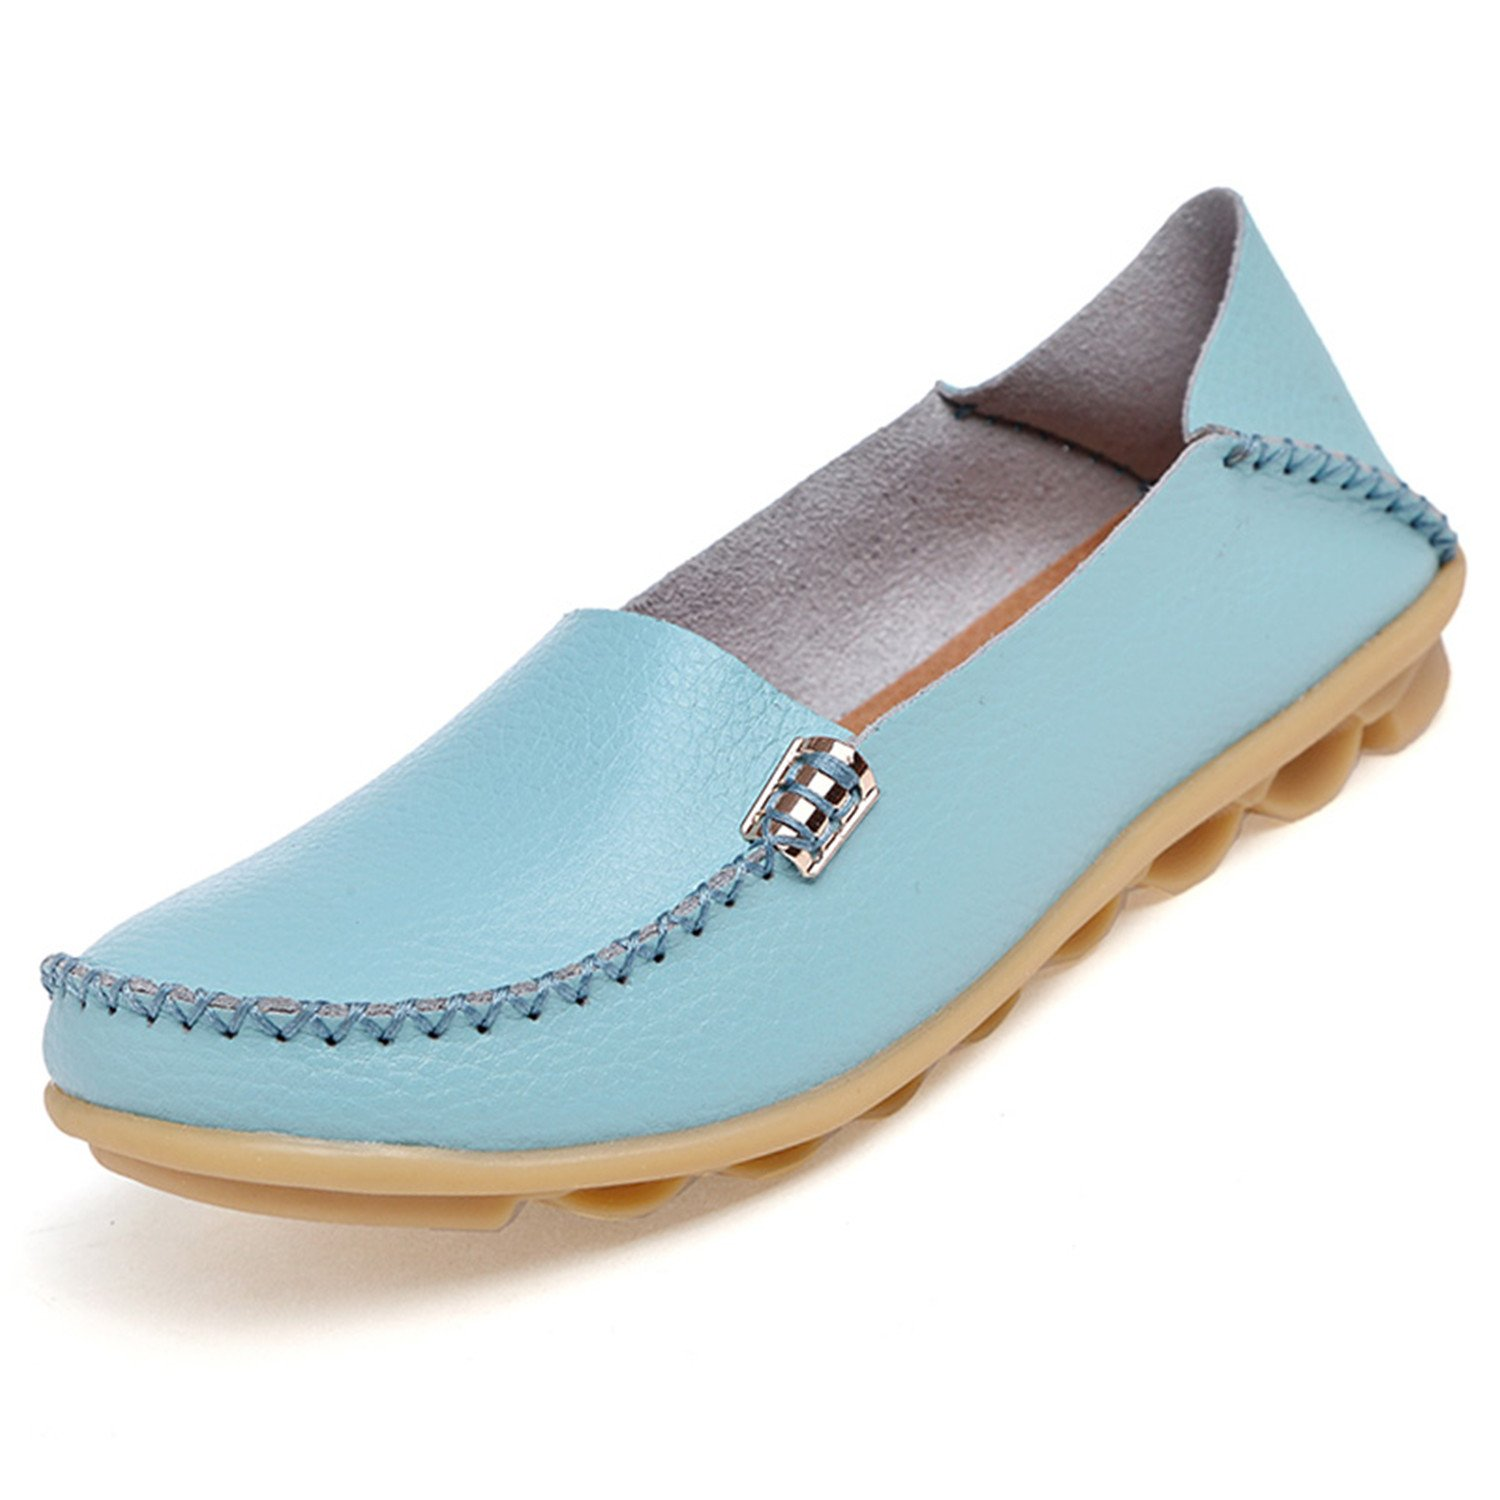 Beststore VAO Summer Candy Colors Genuine Leather Women Casual Shoes New Fashion Breathable Slip-On Peas Massage Flat Shoes Plus Size 35-44 B078FRTPBJ 6 B(M) US|Light Blue